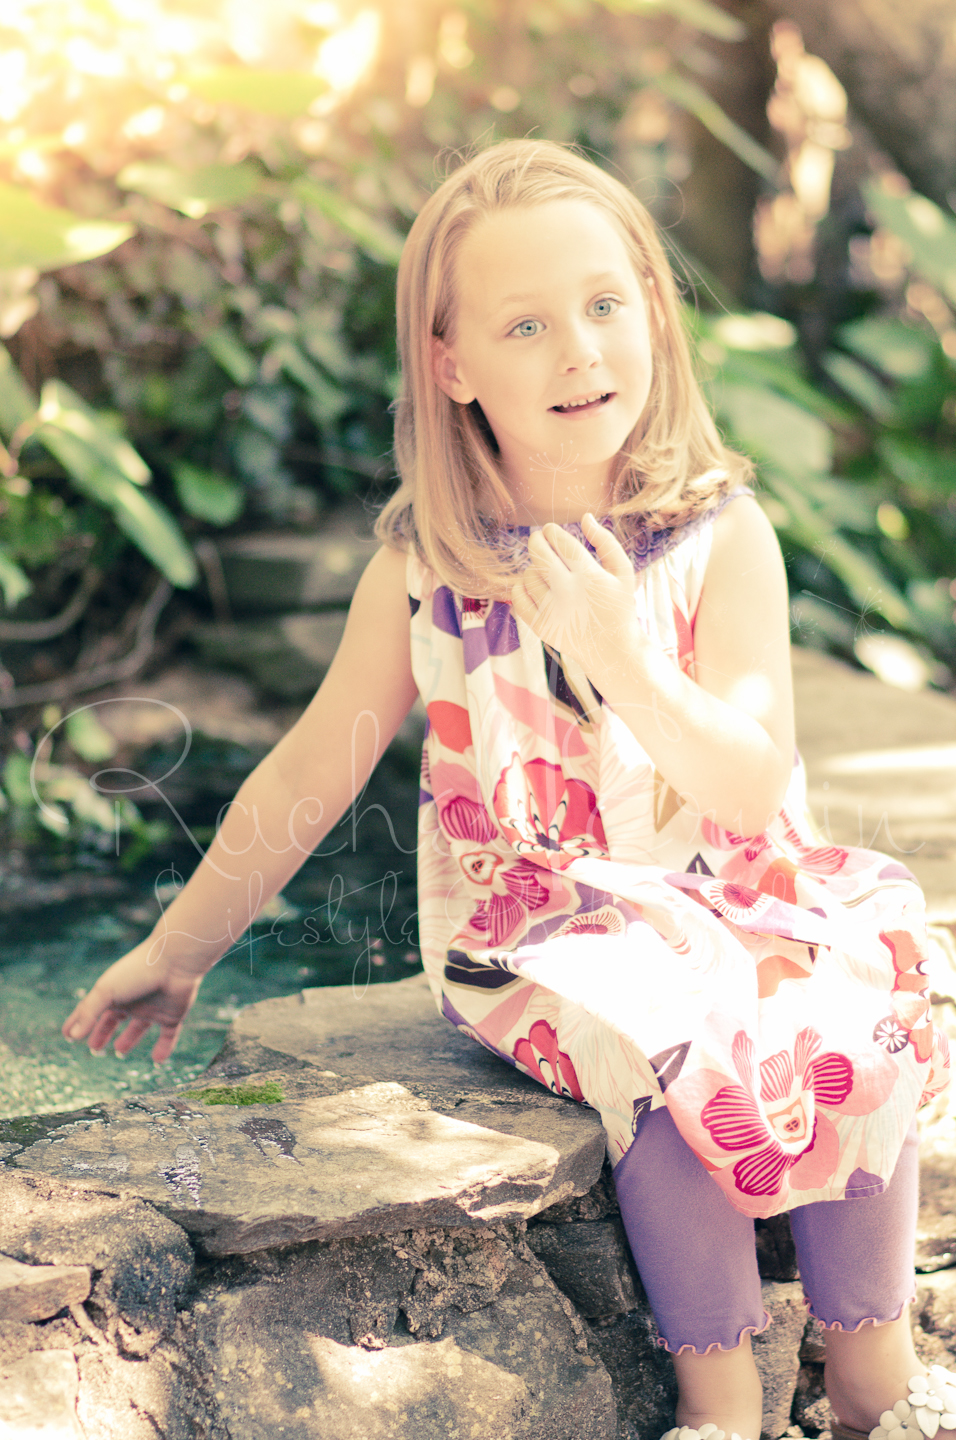 www.tvn.hu imagesize:956x1440 23 Rachel Erwin Lifestyle Photography: God's love in ACTION… photo session